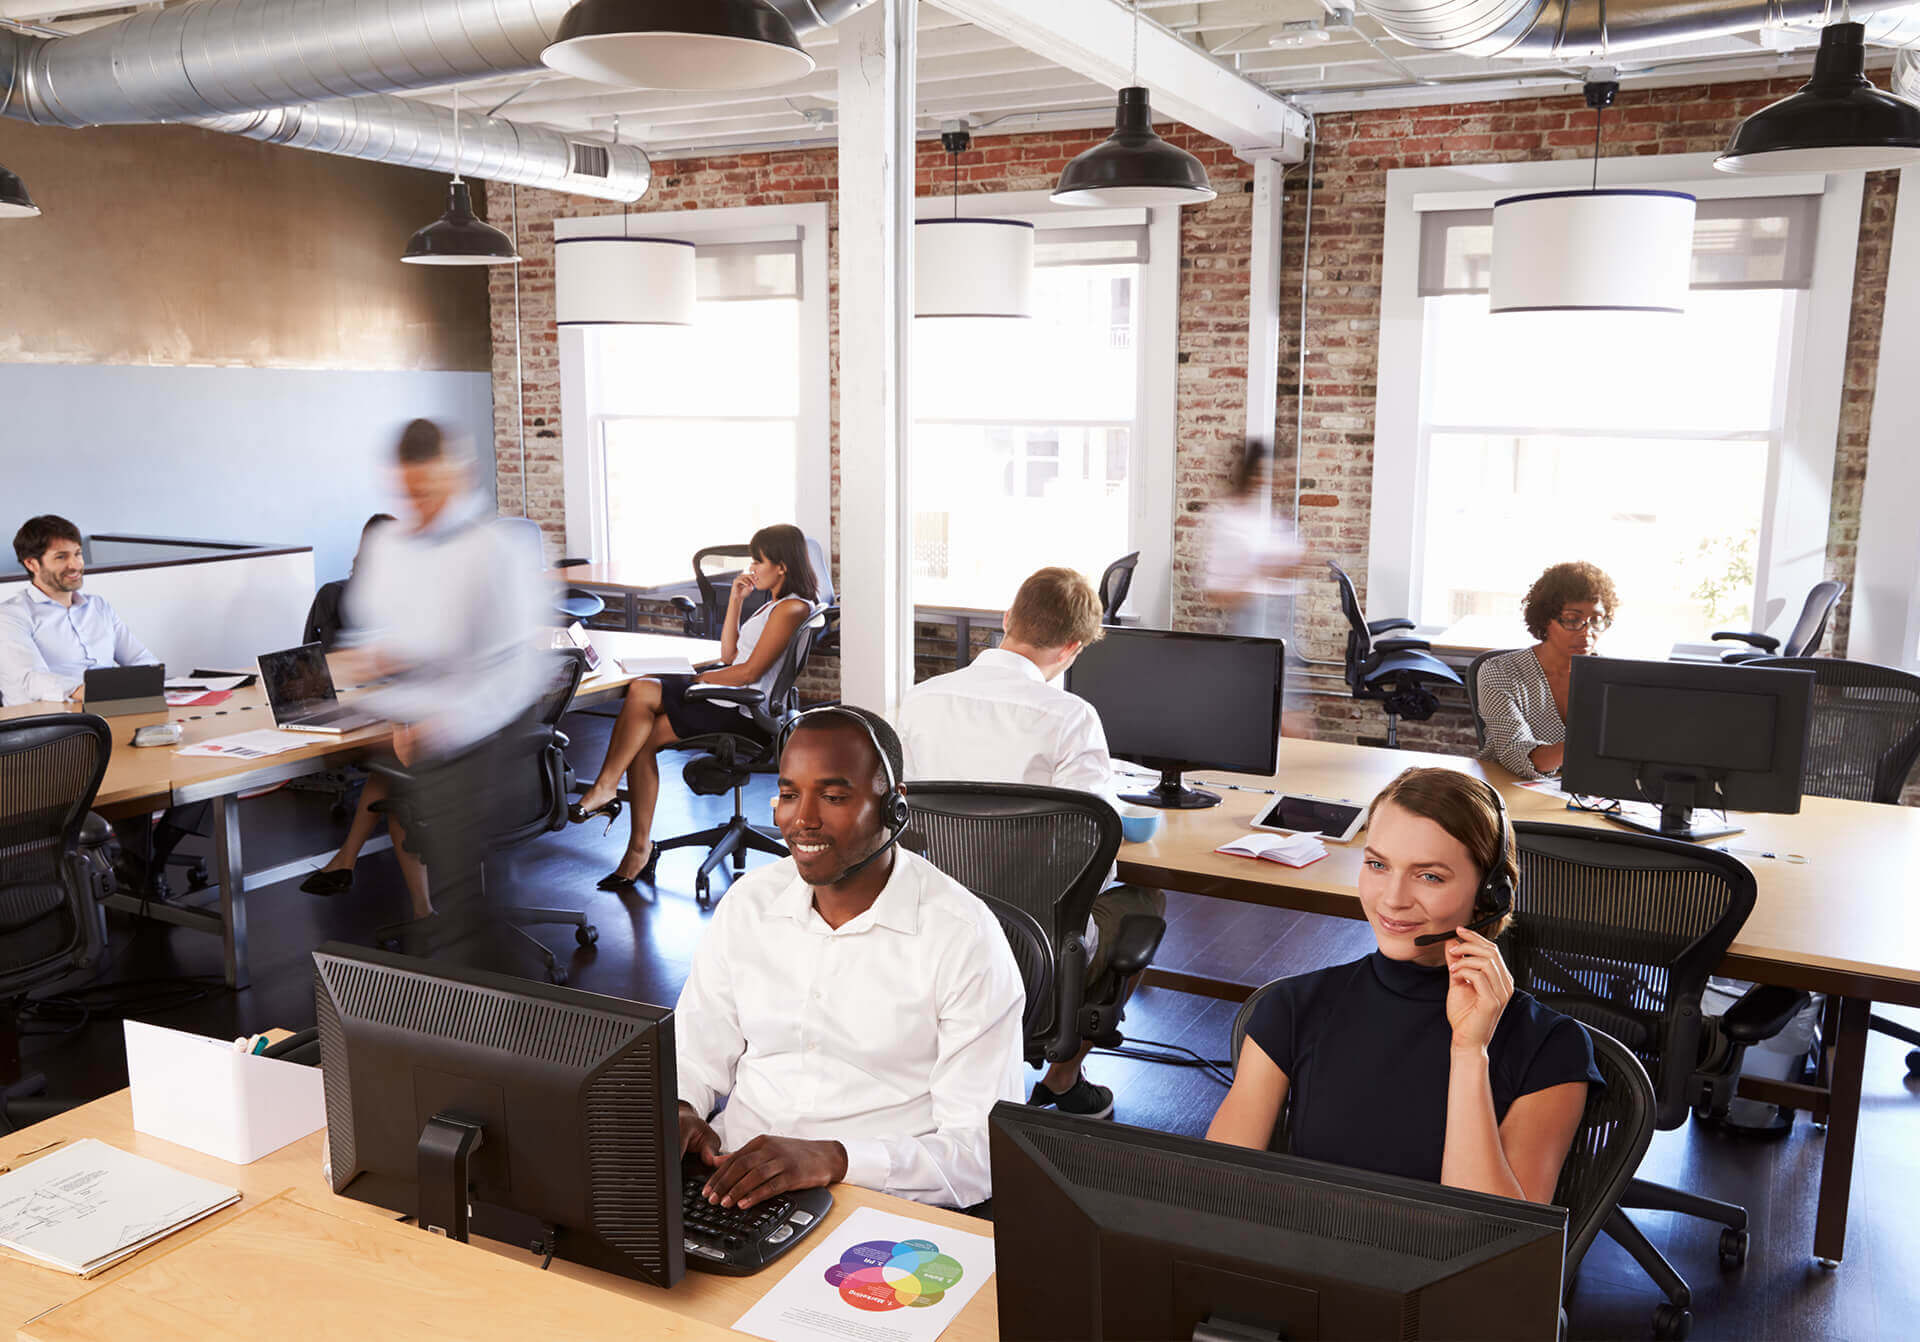 Using Back-Office Services and Outsourcing to Accelerate Growth